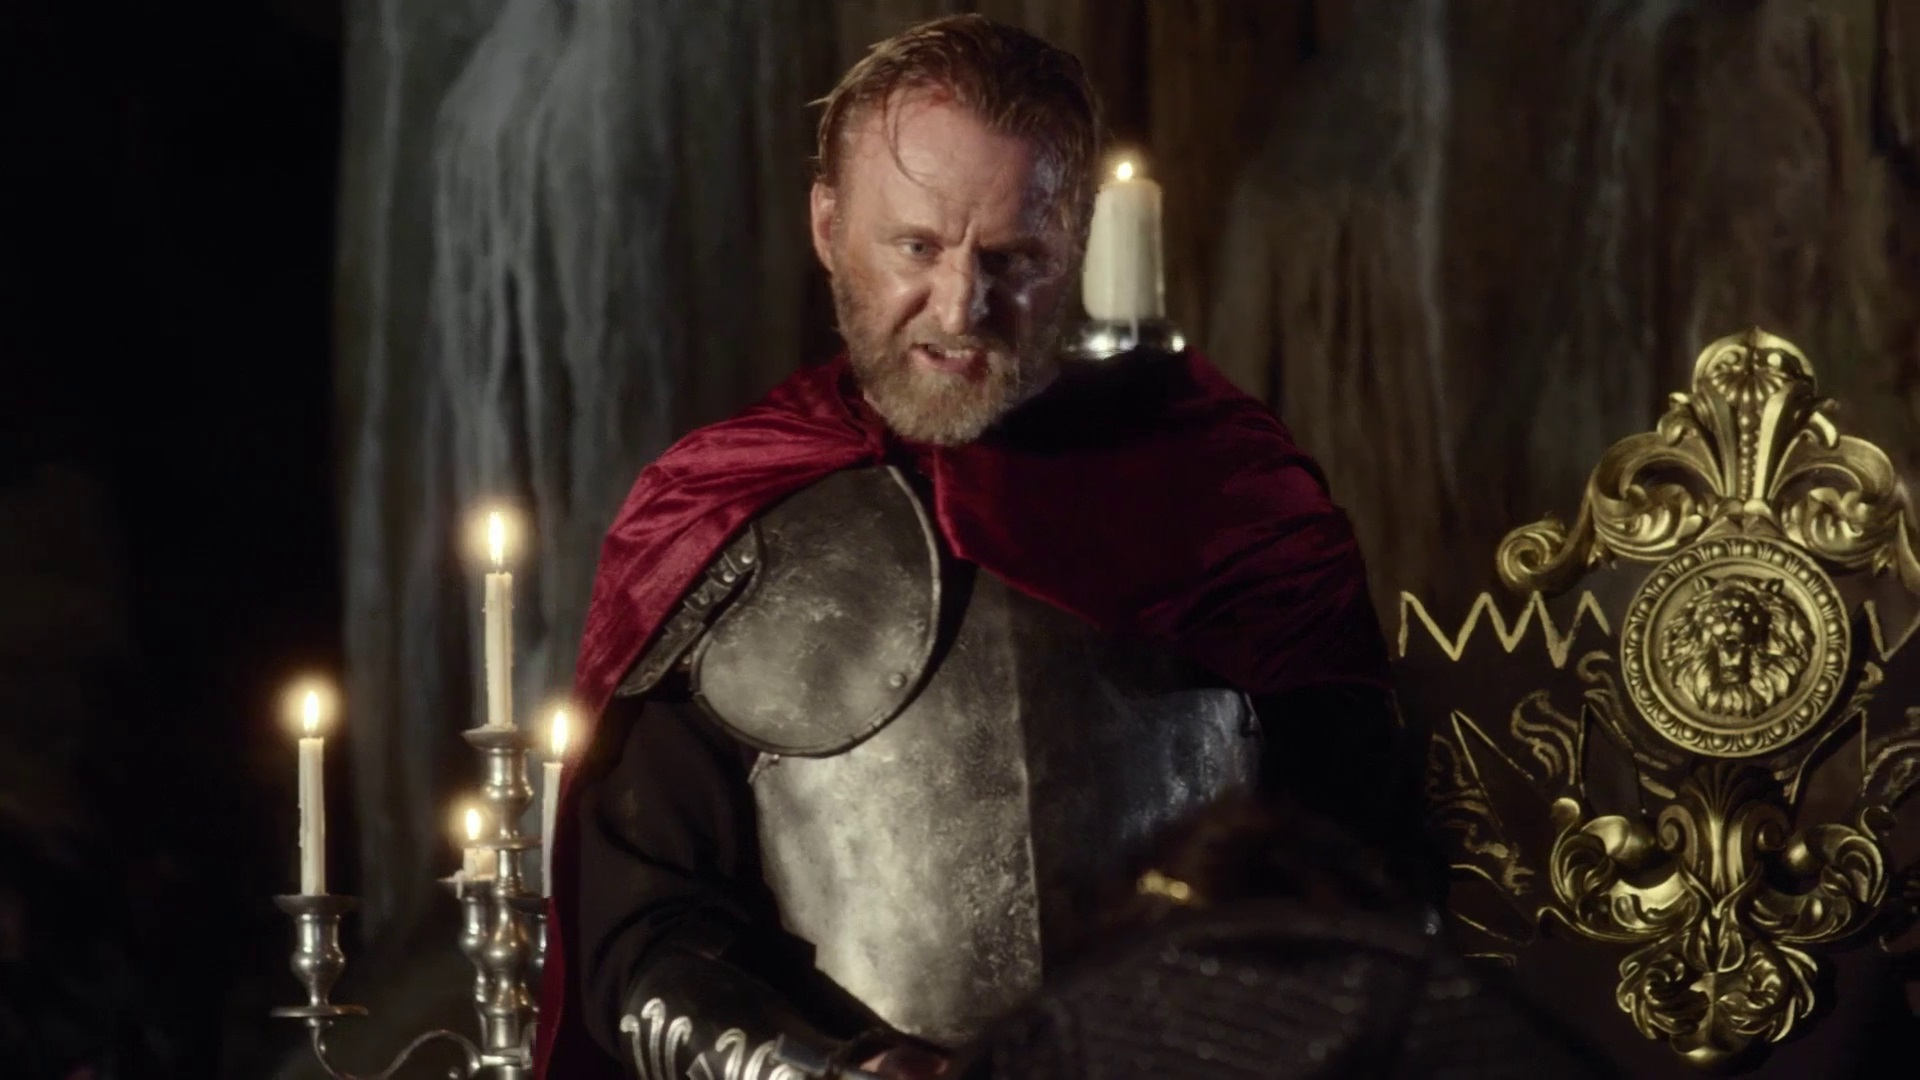 King Arthur (Byron Gibson) in King Arthur and the Knights of the Round Table (2017)